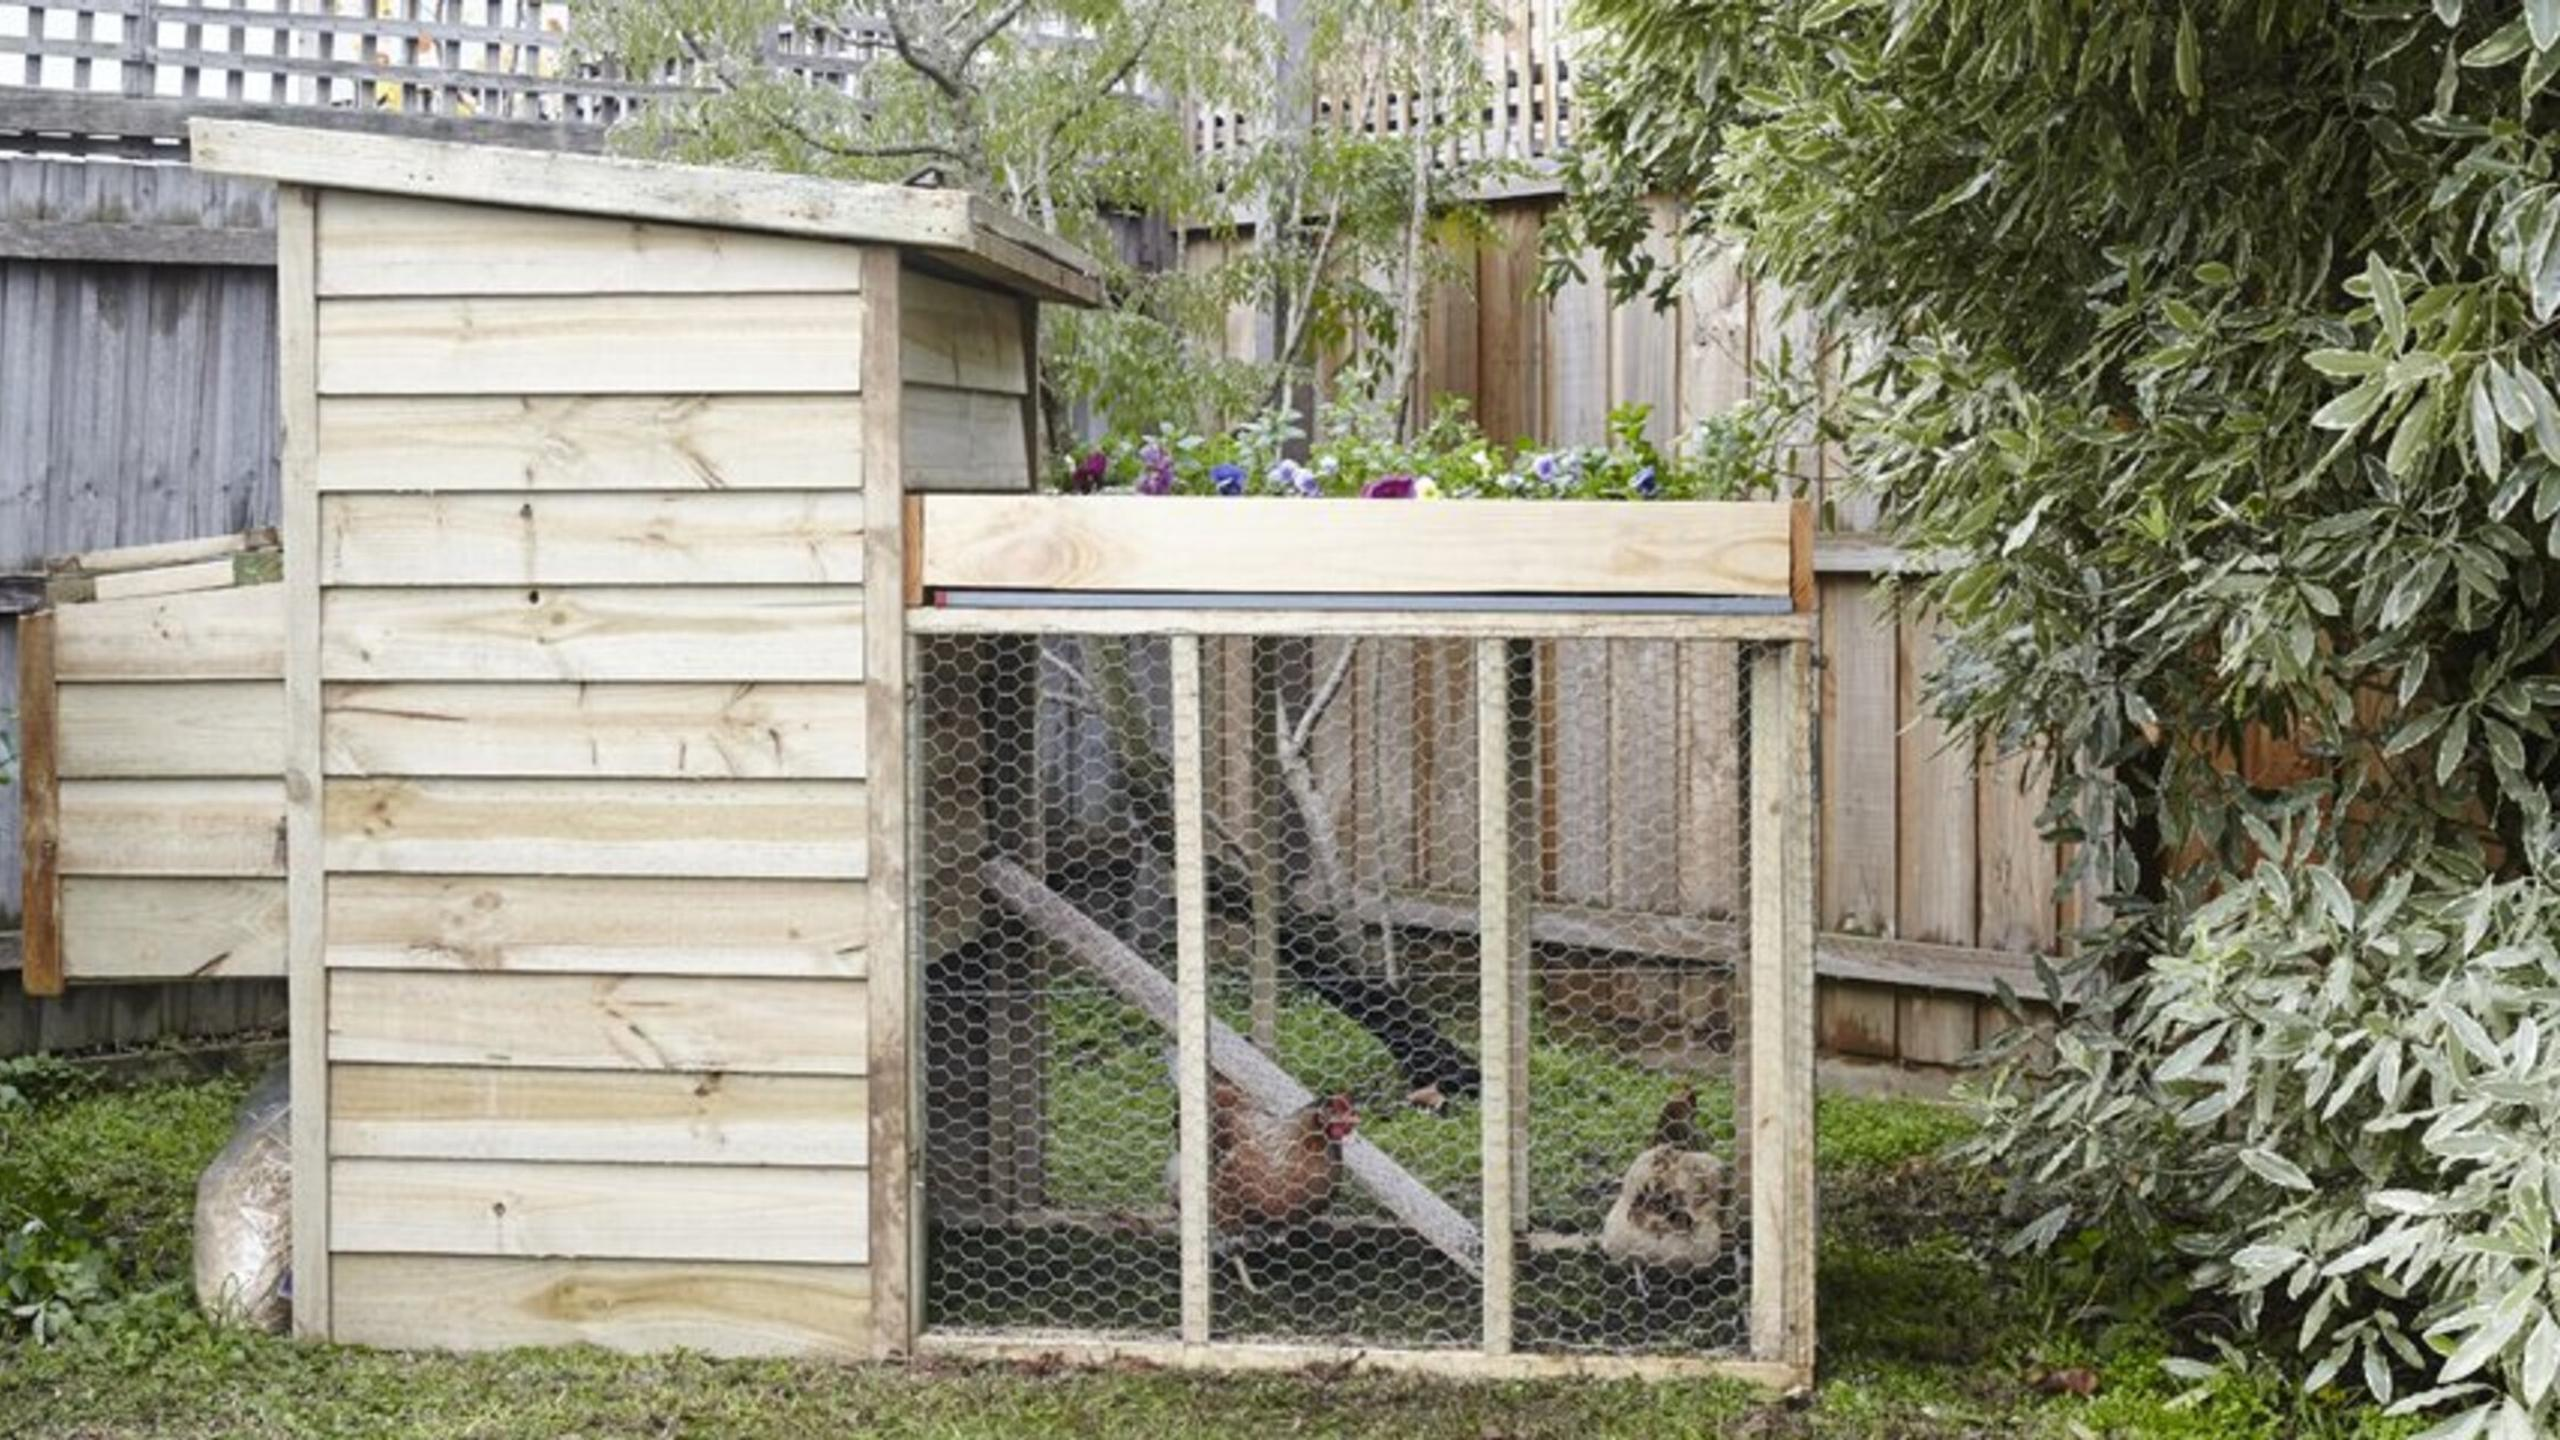 Large homemade chicken coop.